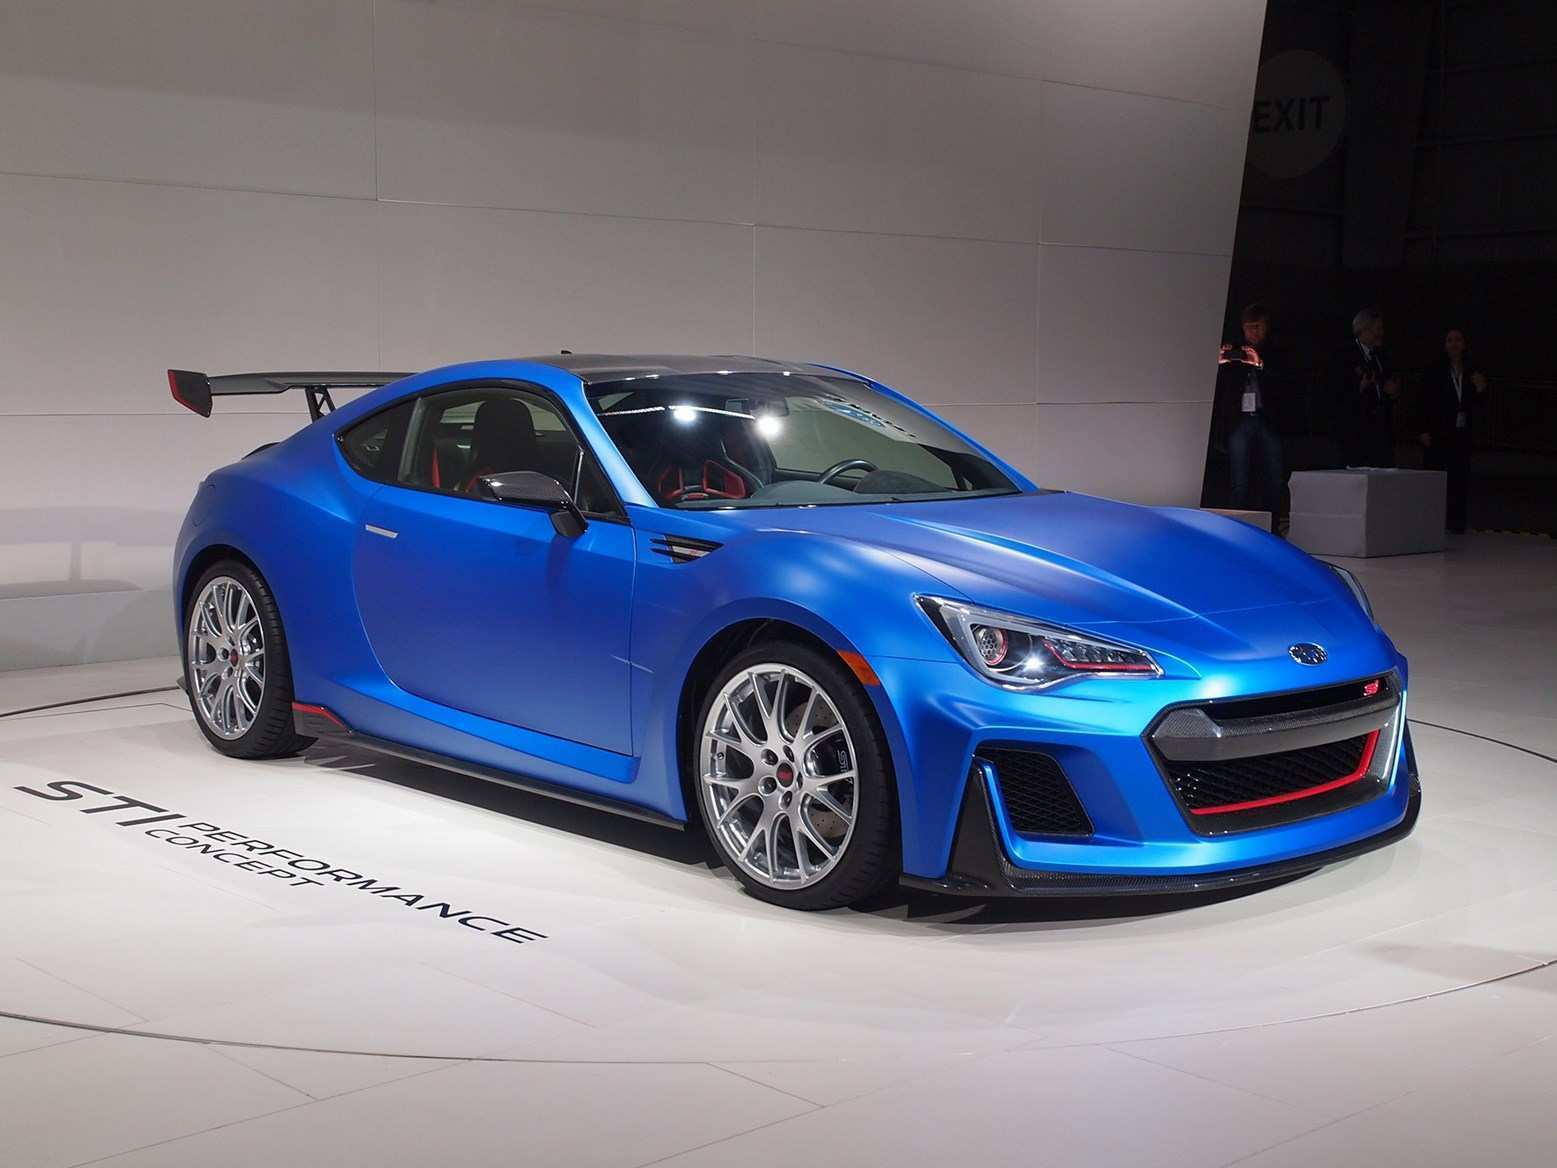 62 The Best 2020 Subaru Brz Sti Release Date And Concept